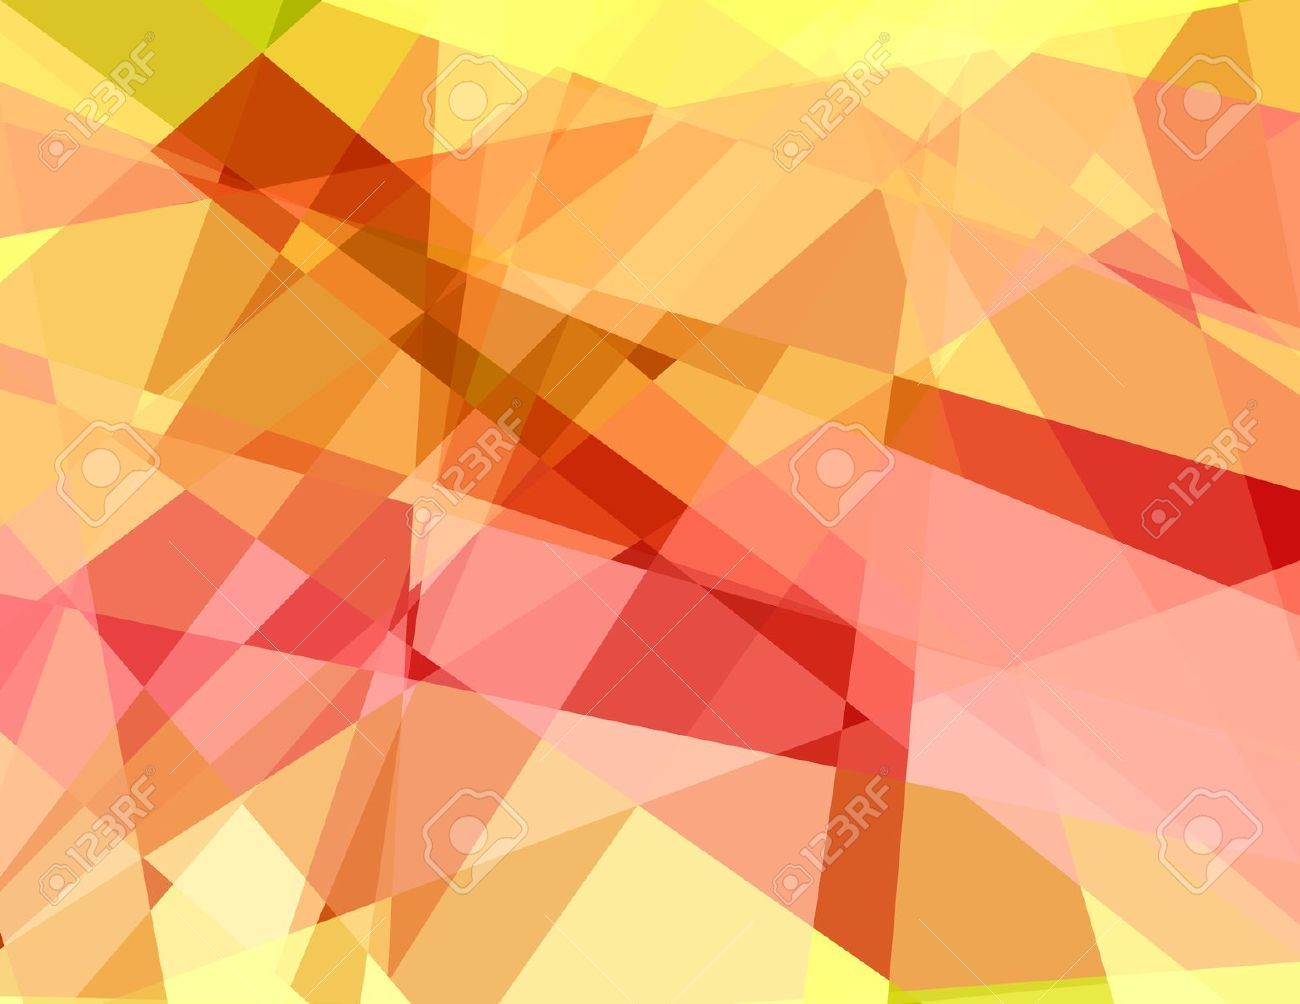 Background Art Design : Retro abstract cubism art graphic design background stock